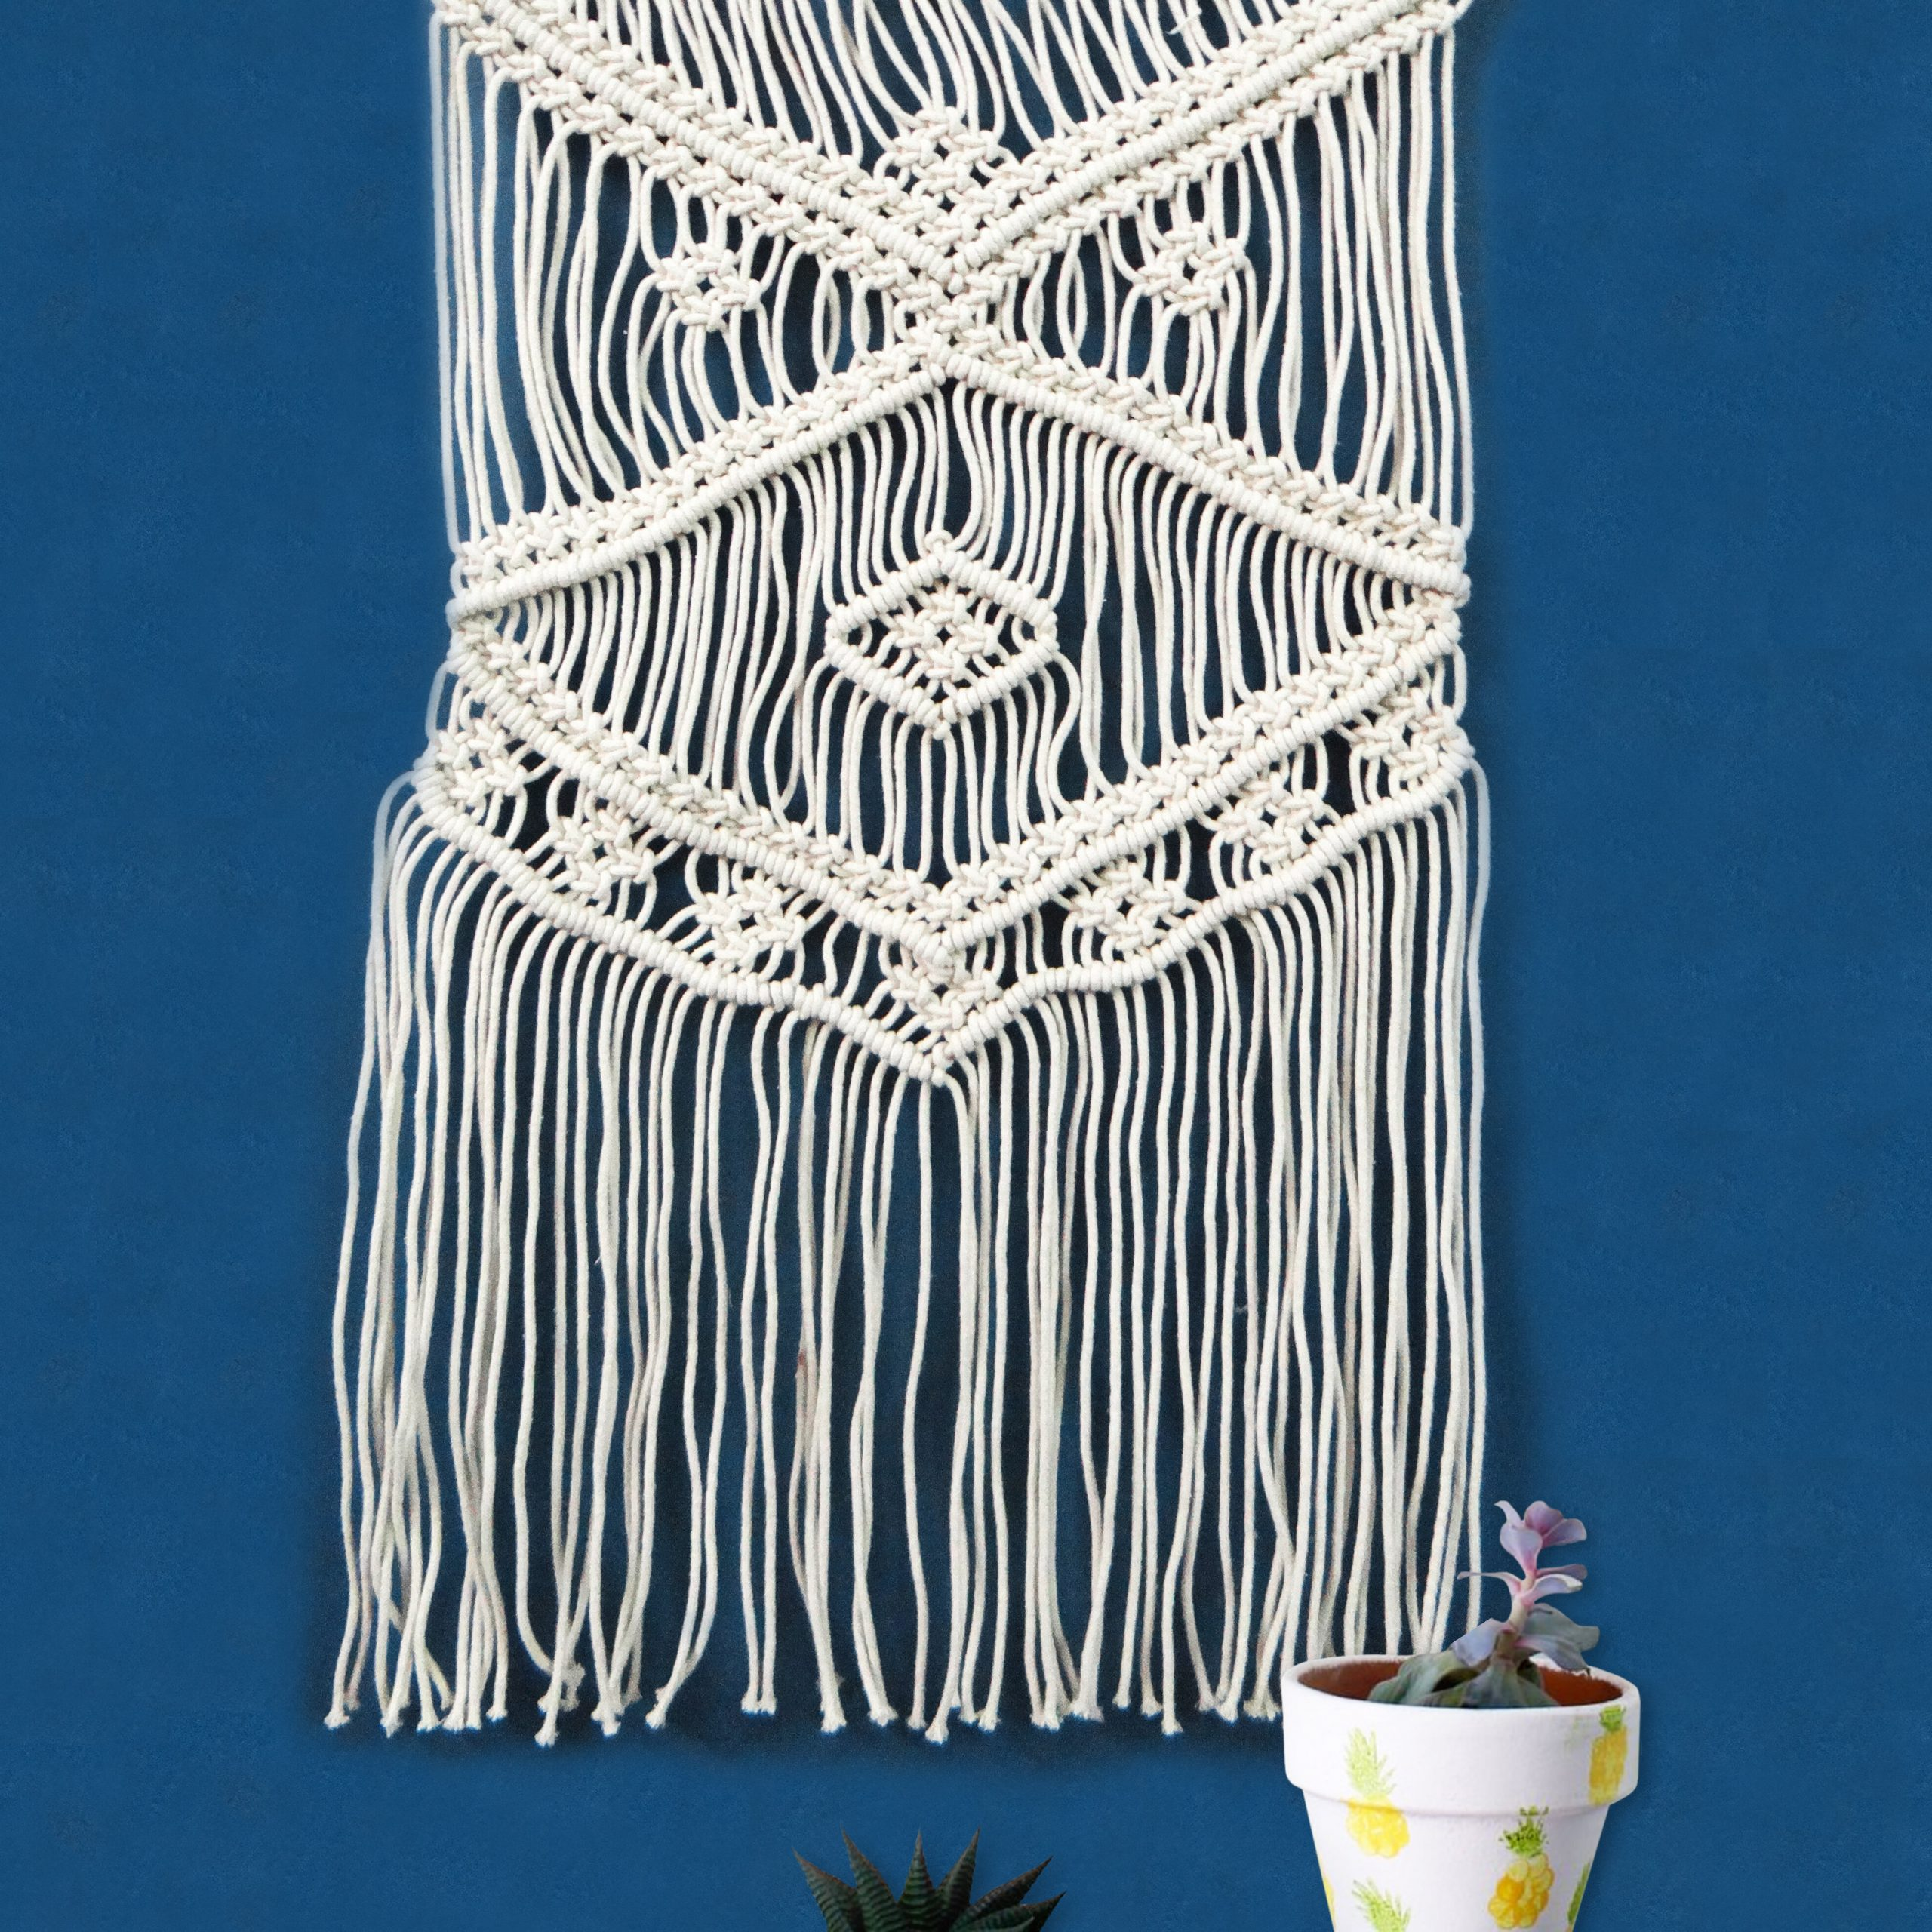 Blended Fabric Ranier Wall Hangings With Hanging Accessories Included Regarding Newest Cotton Wall Hanging Rod Included (View 15 of 20)